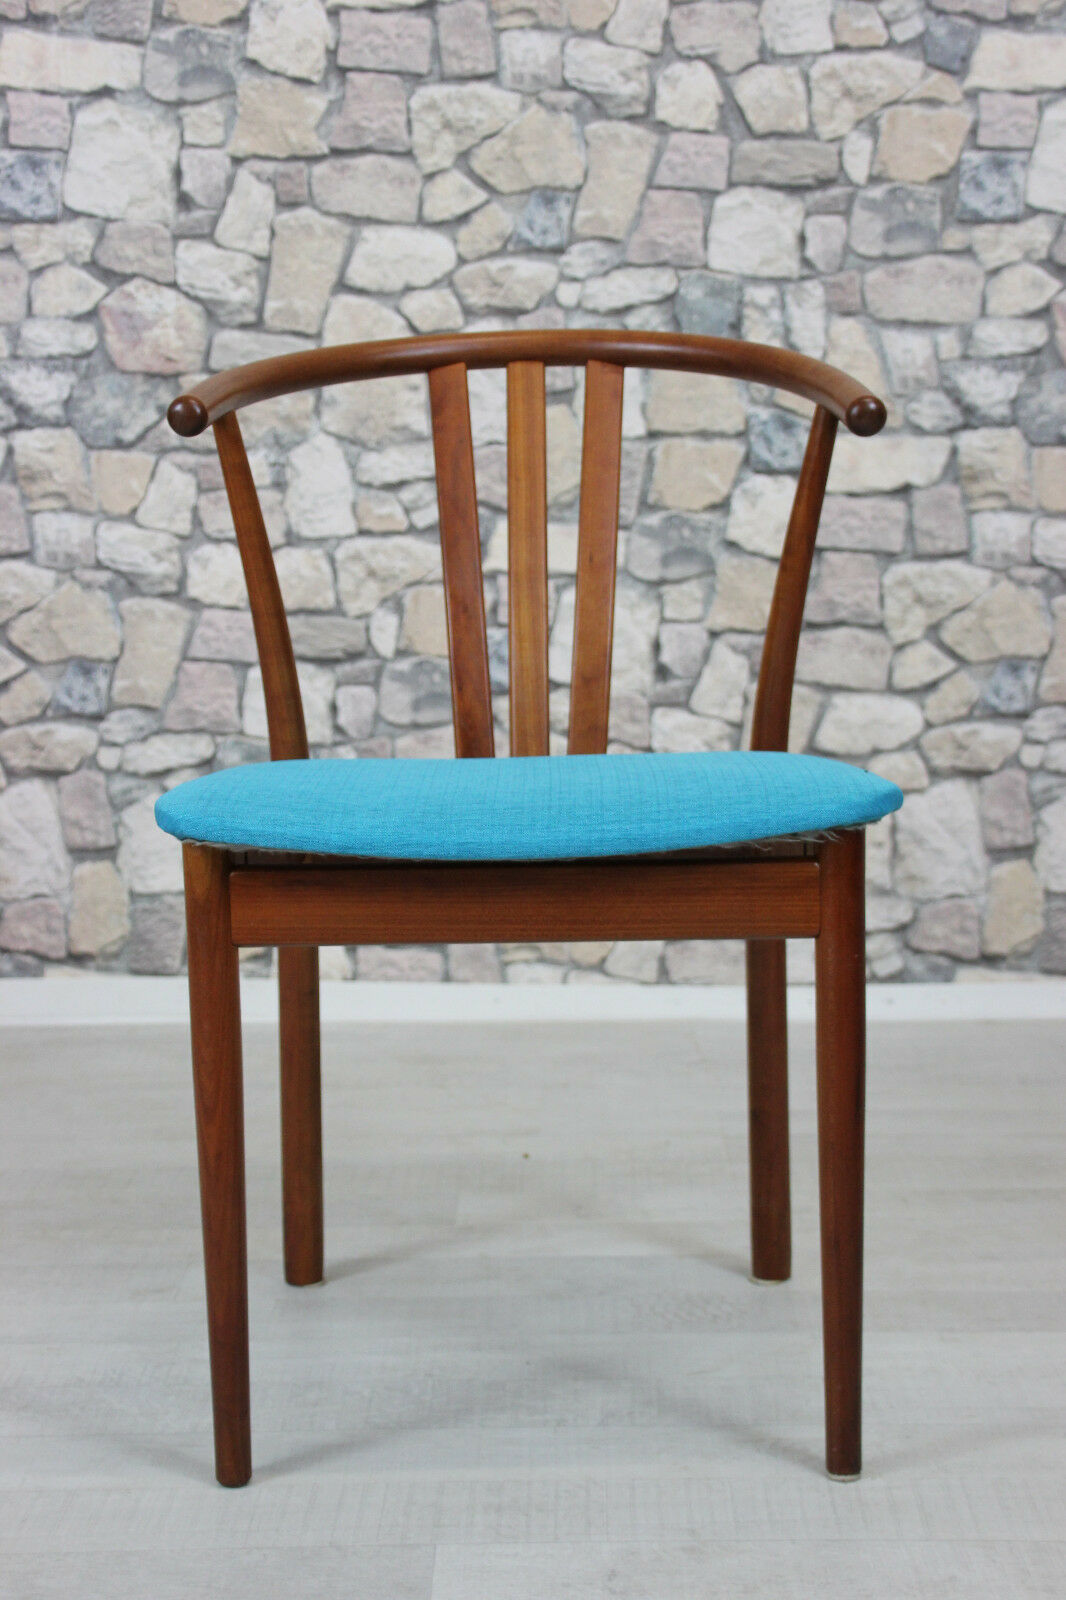 60er teak stuhl armlehnstuhl danish design 60s chair arm for Stuhl design 60er